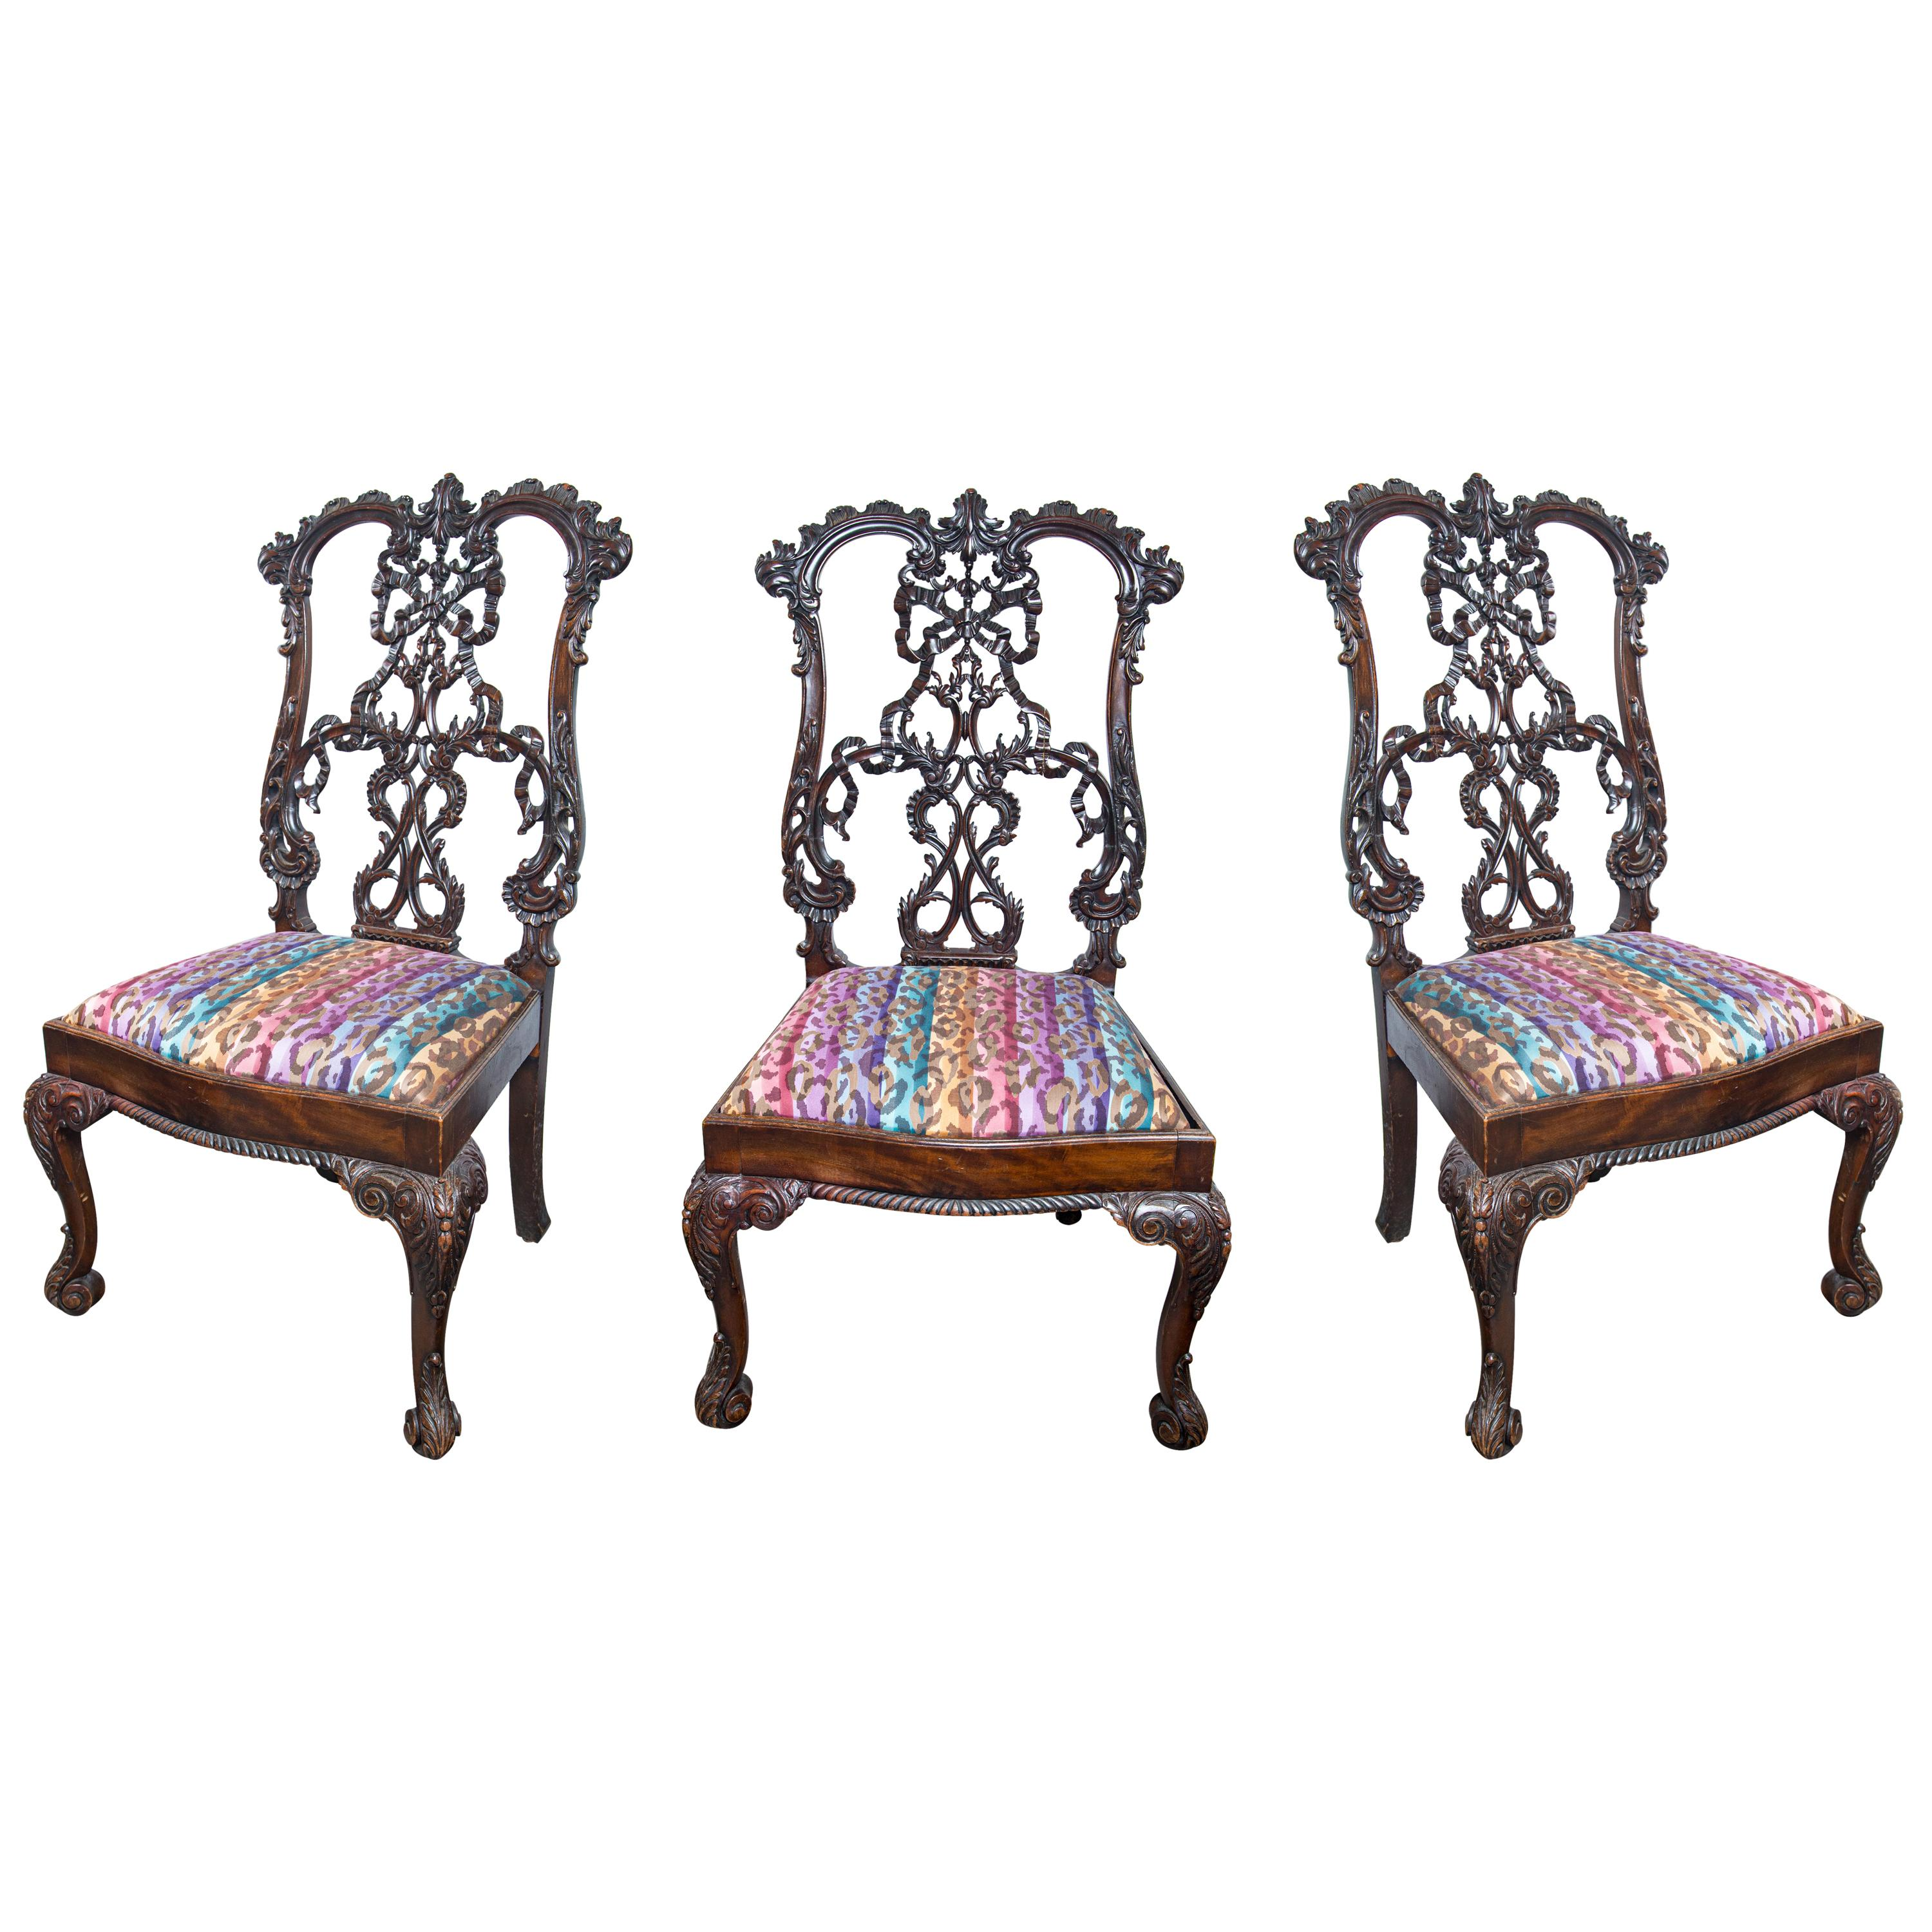 Set of 3 Antique Carved Mahogany Side Chairs